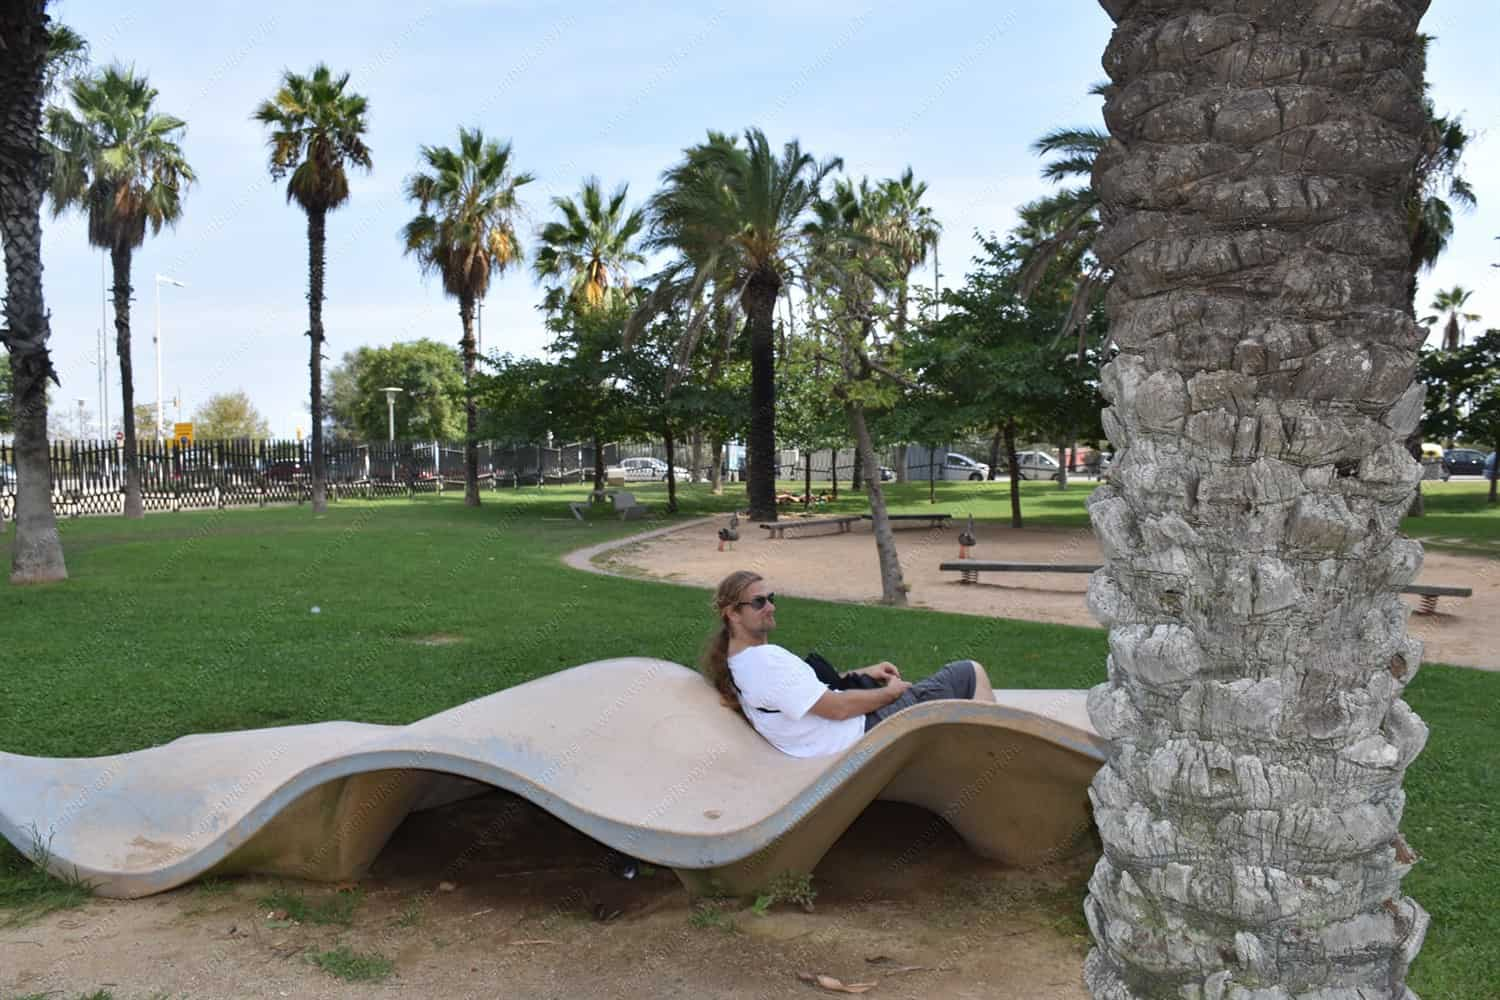 An Ecological Park In Barcelona: The Diagonal Mar